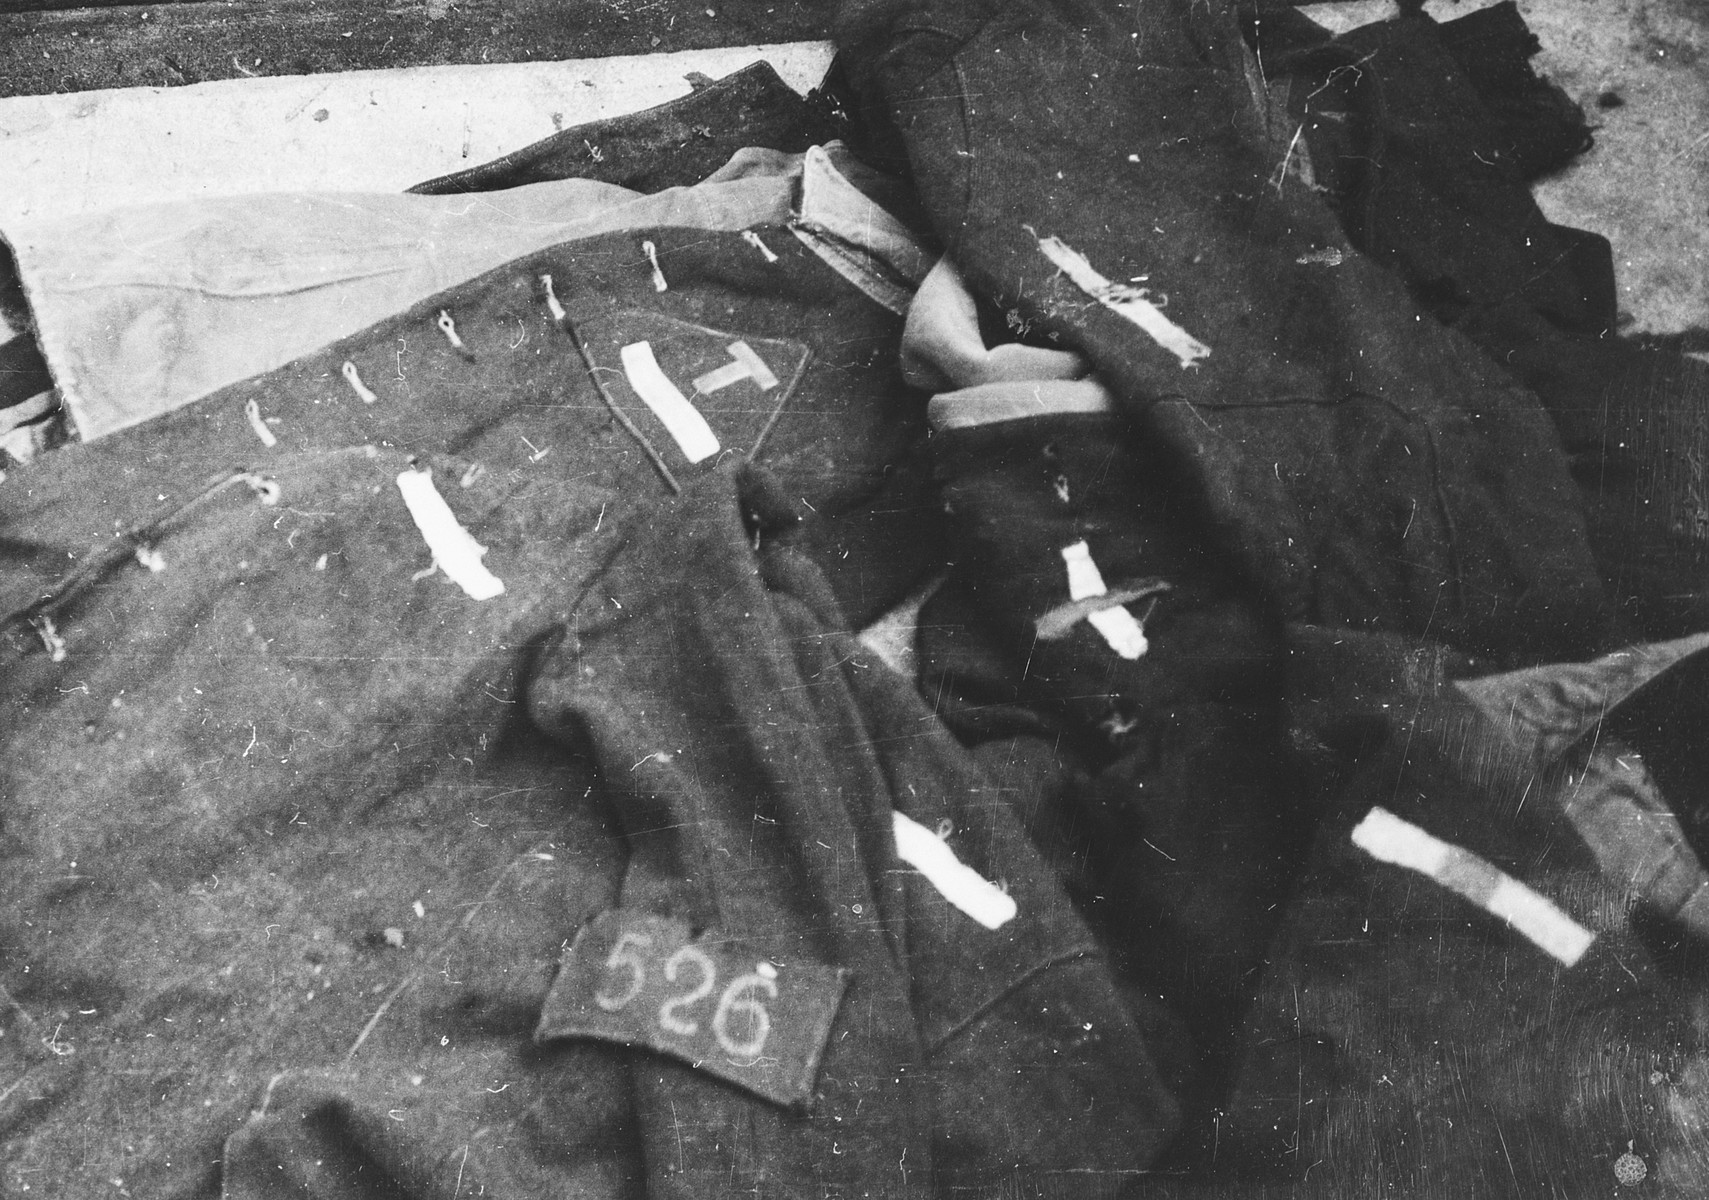 A pile of uniforms with distinctive badges discovered in the Breendonck concentration camp.